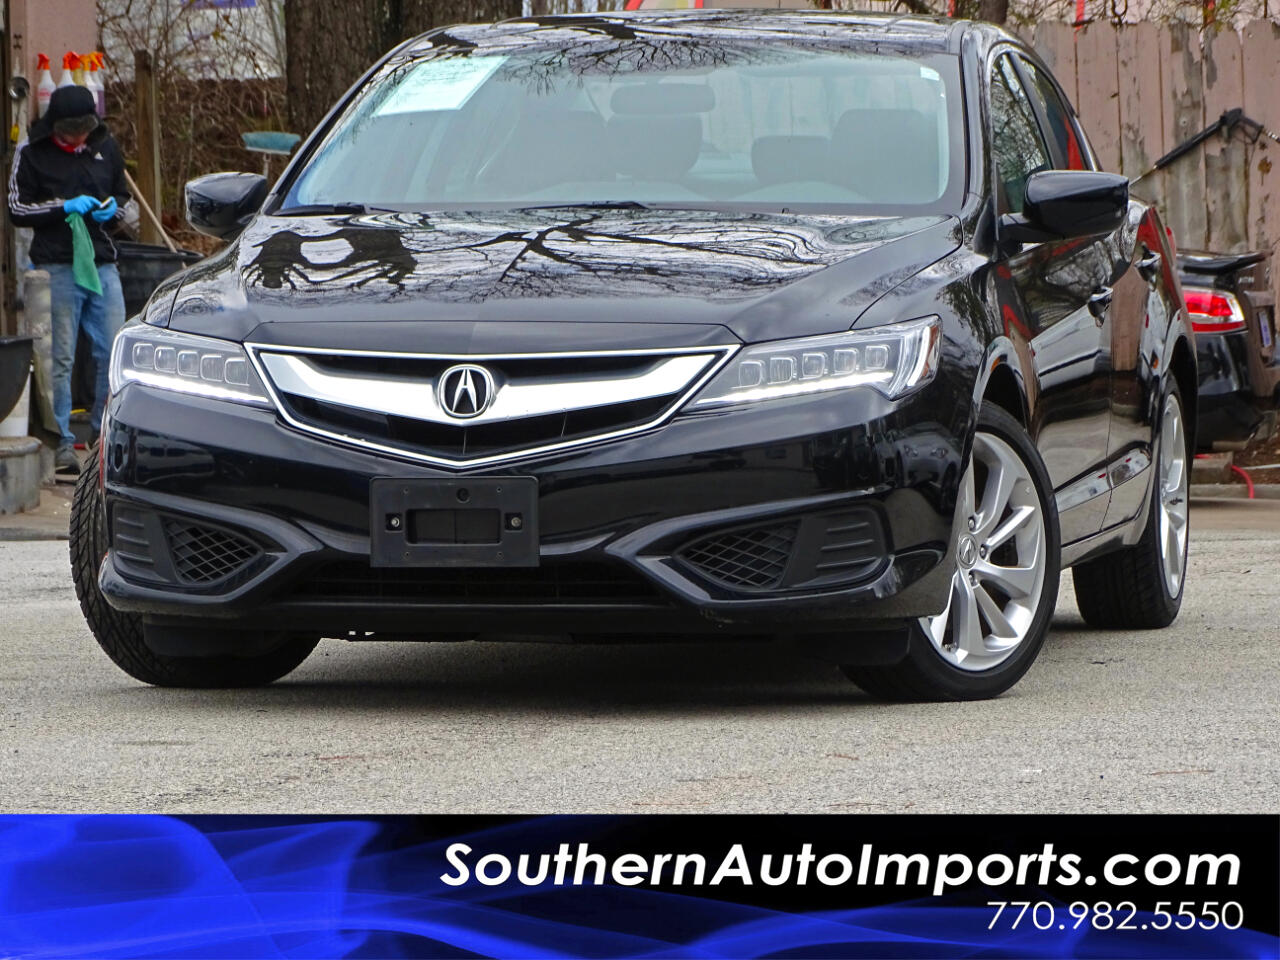 2016 Acura ILX Premium w/Watch Plus Package